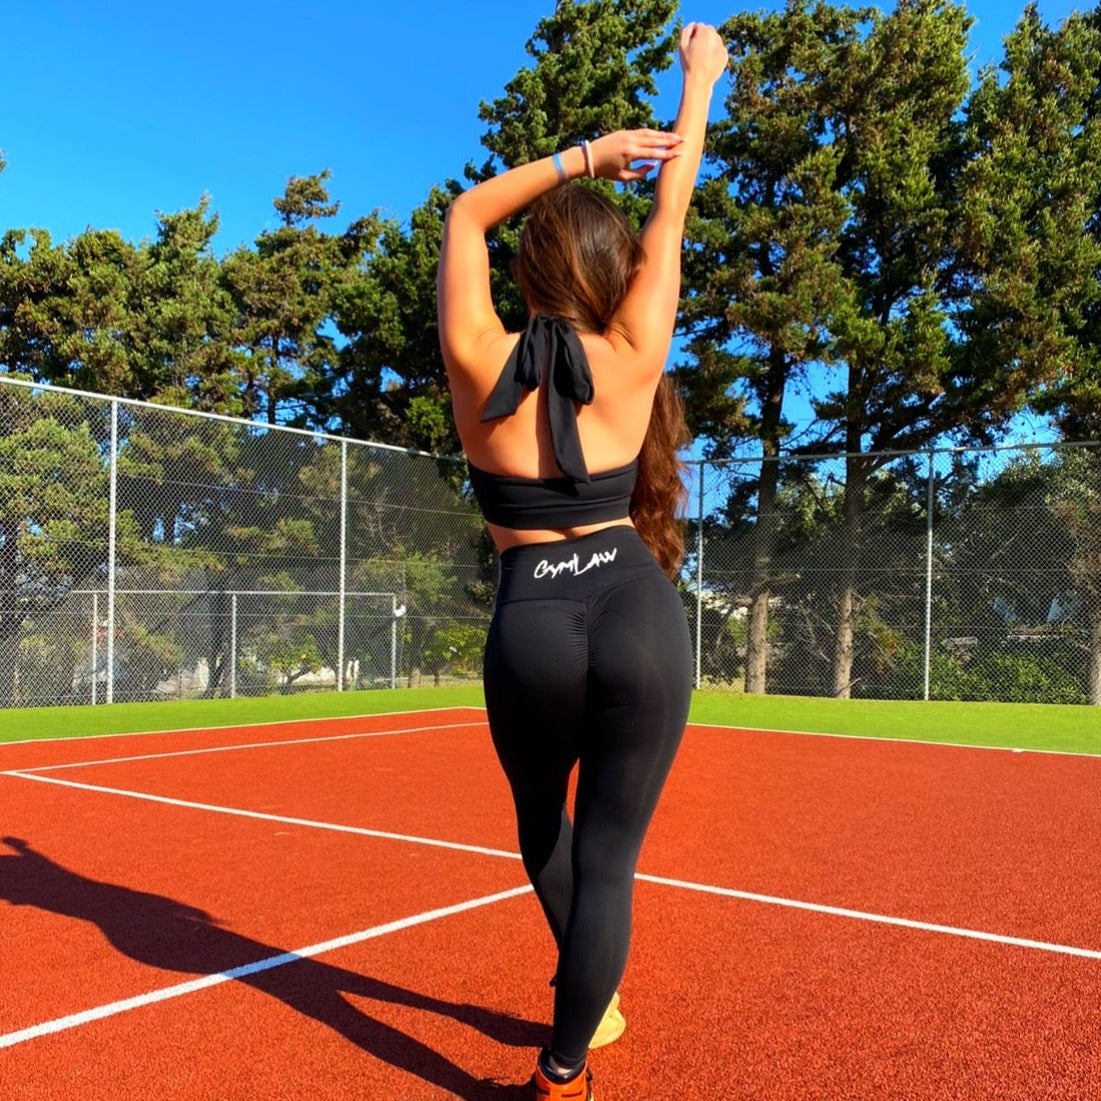 Onyx Black Allure Halterneck Sports Bra